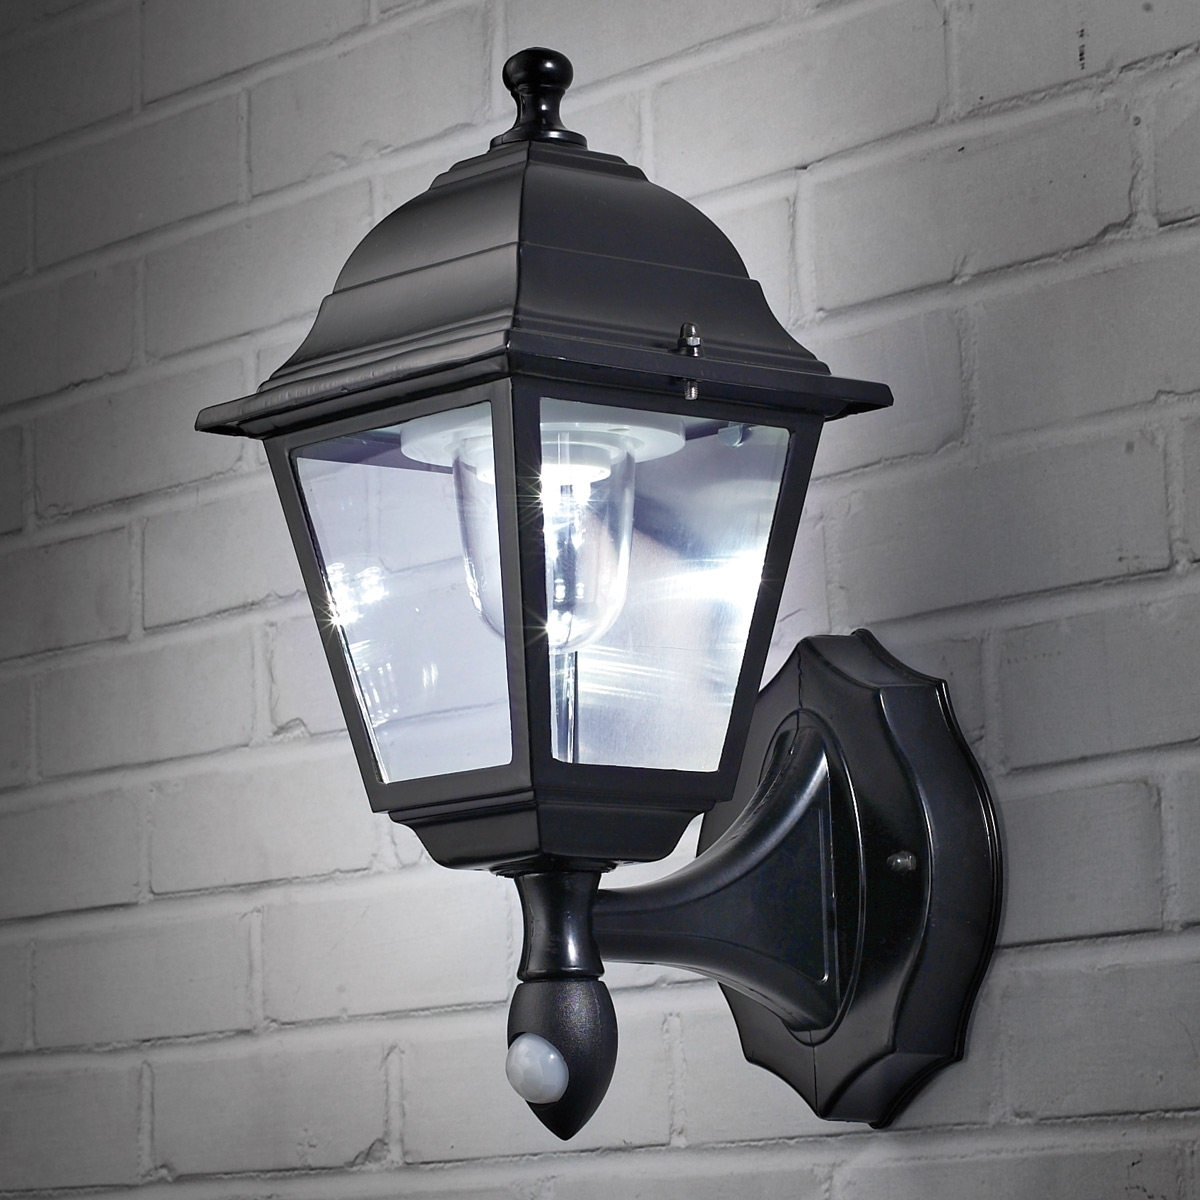 Indoor Light : Luxury Prime Indoor/outdoor Lighting Wireless Remote throughout Outdoor Lanterns With Remote Control (Image 7 of 20)